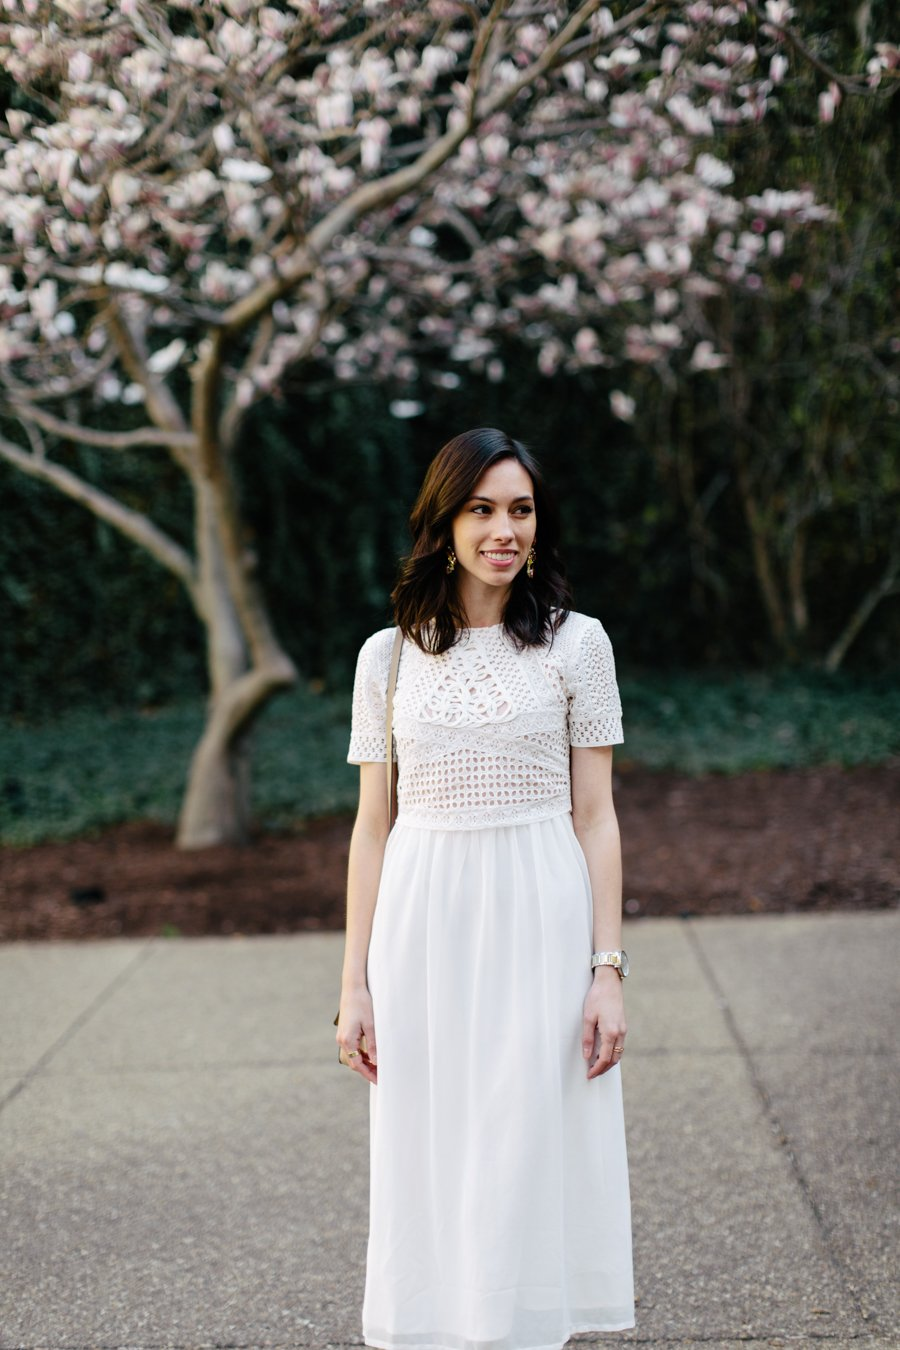 pittsburgh fashion blogger-wellesley and king-@wellesleyandking-petite midi dress